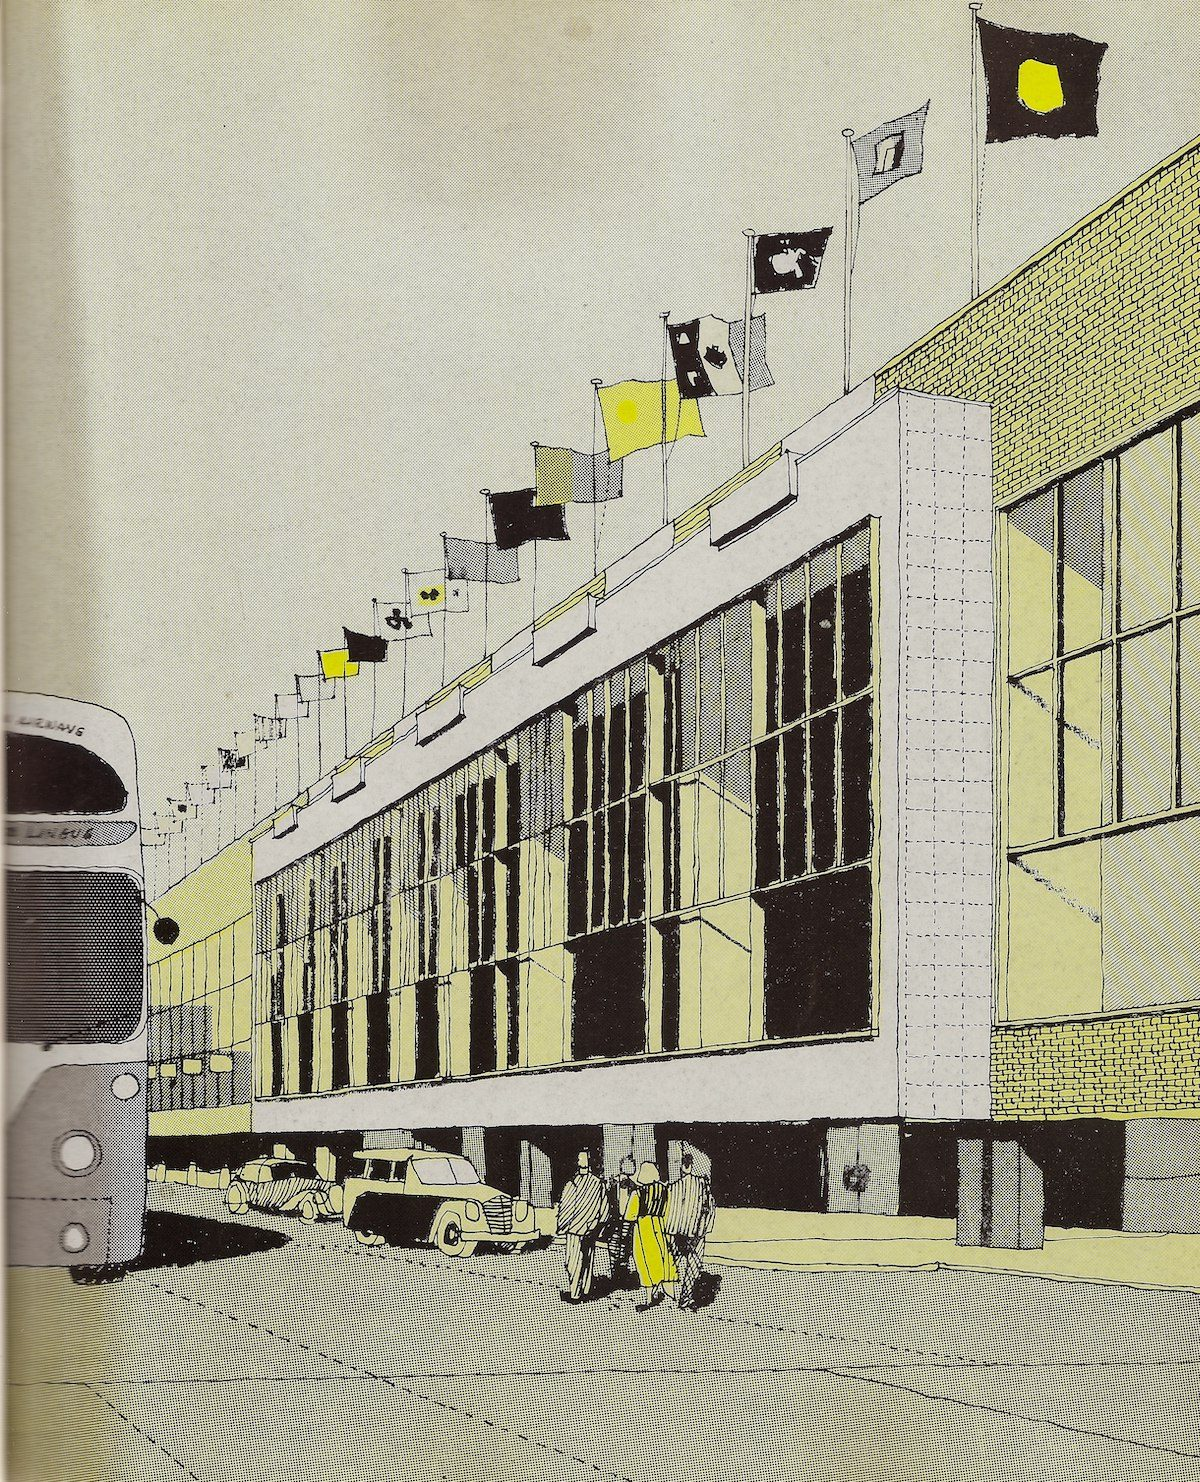 Passenger Terminal Building, London Heathrow Airport - illustration by Gordon Cullen - 1956 Another of Cullen's stylish sketches - seen here is the new Terminal Building that formed the heart of the 1954/56 reconstruction of Heathrow that was to form one of the world's great airports.